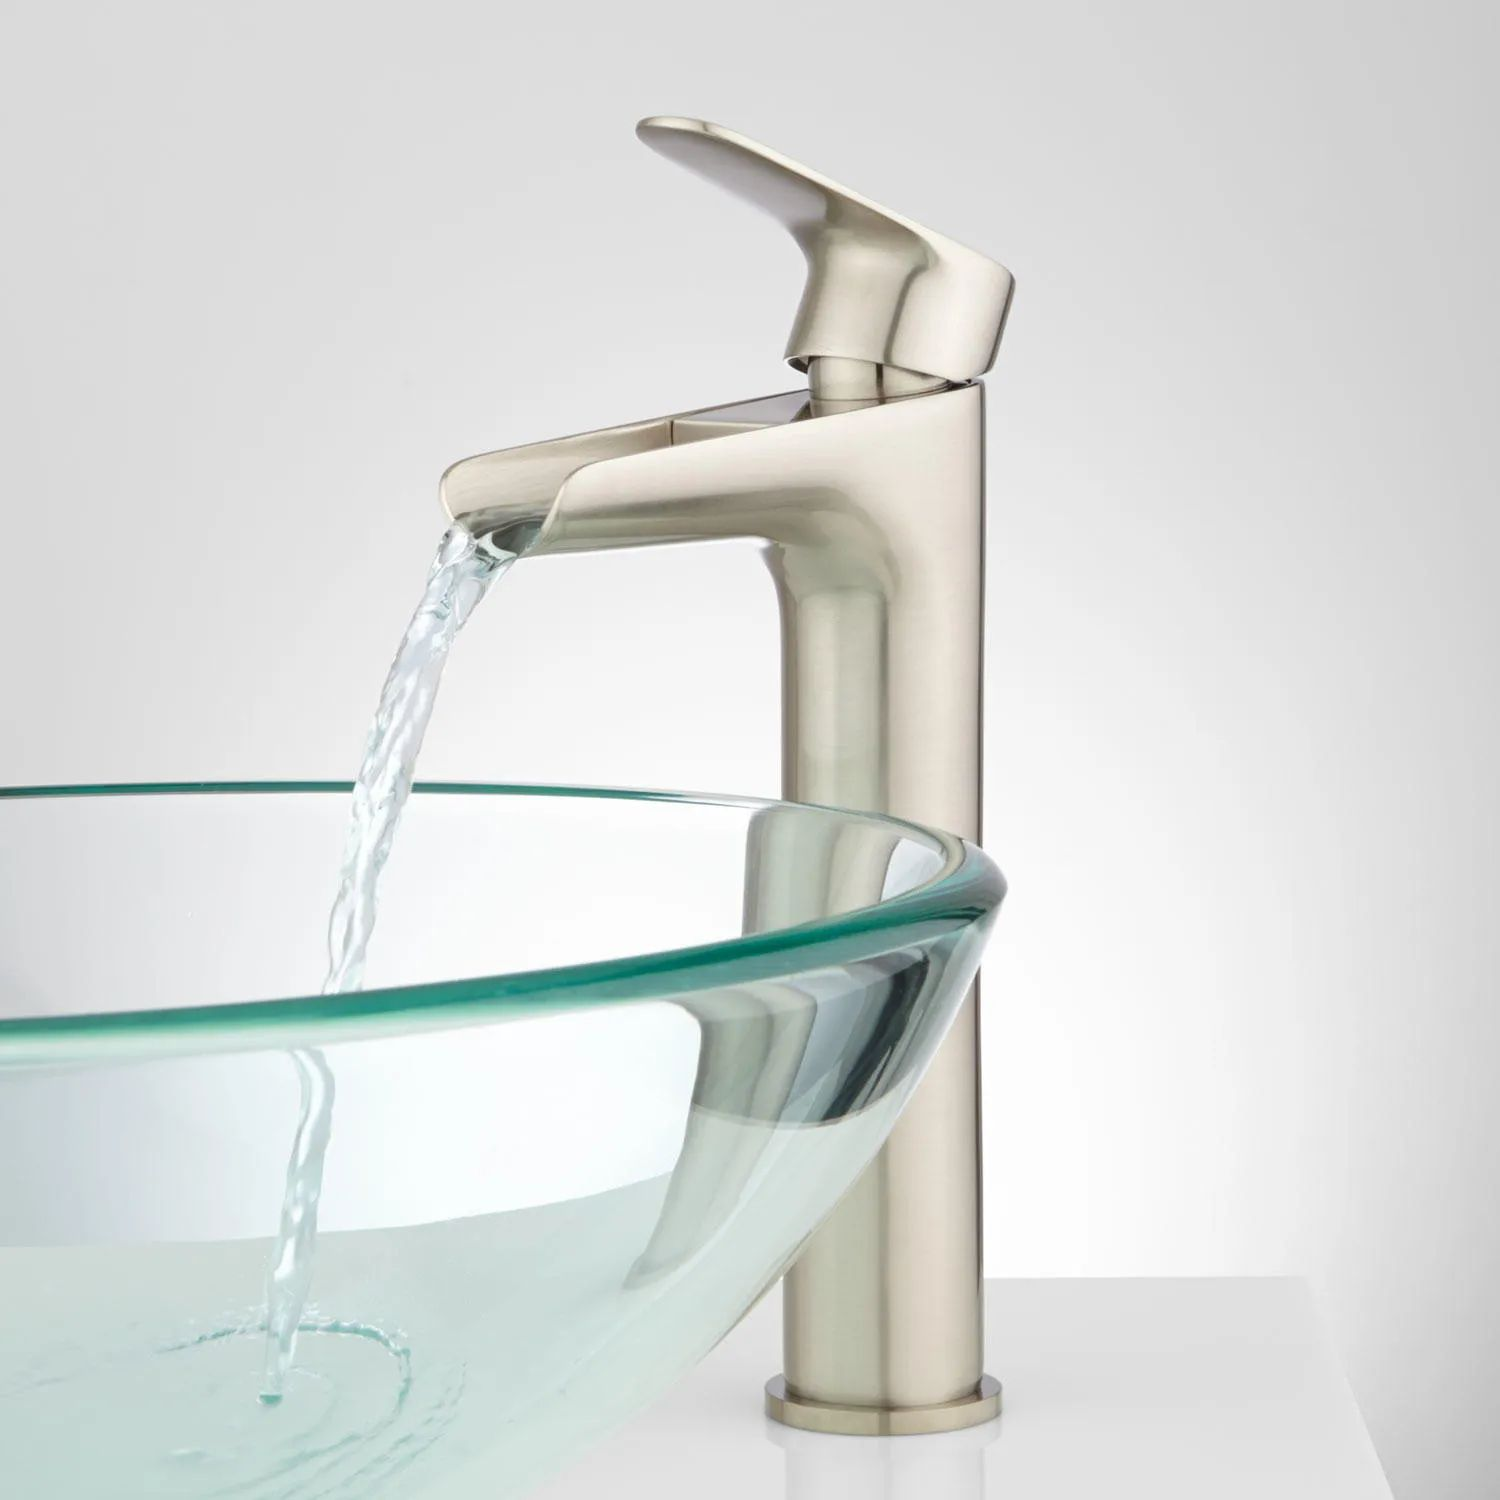 Pagosa waterfall single hole vessel faucet